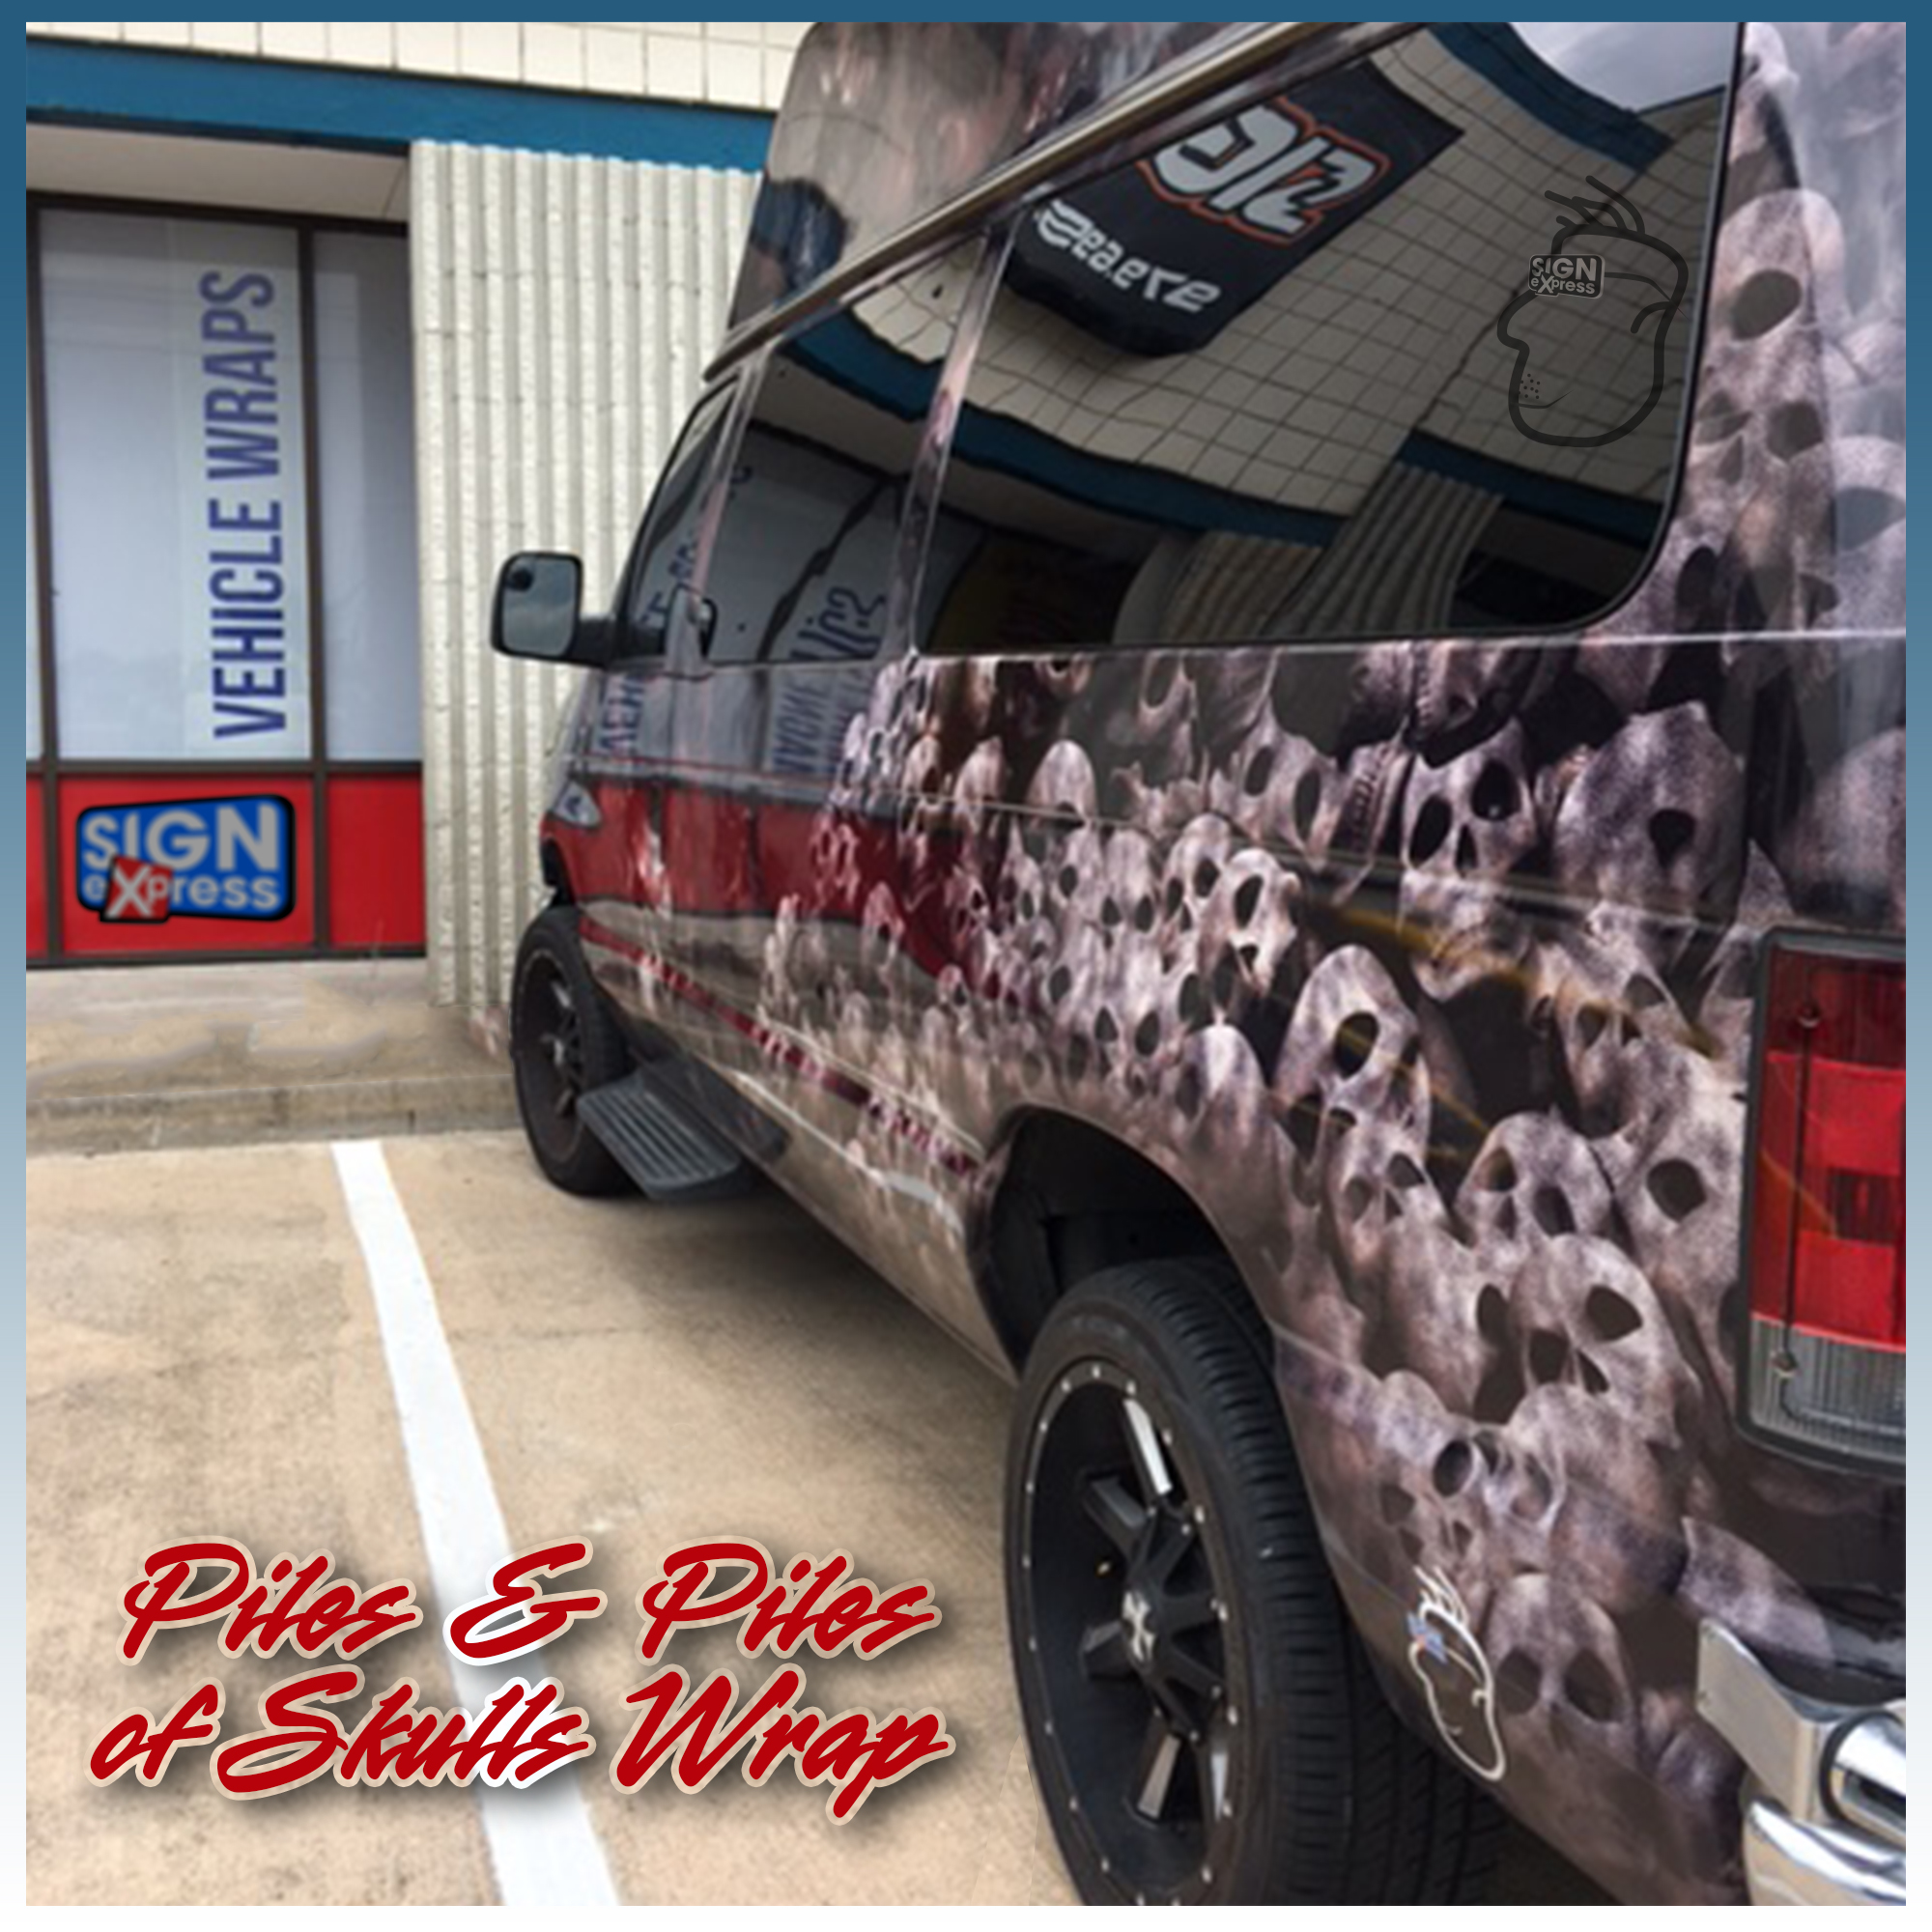 Skulls wrap by Sign Express